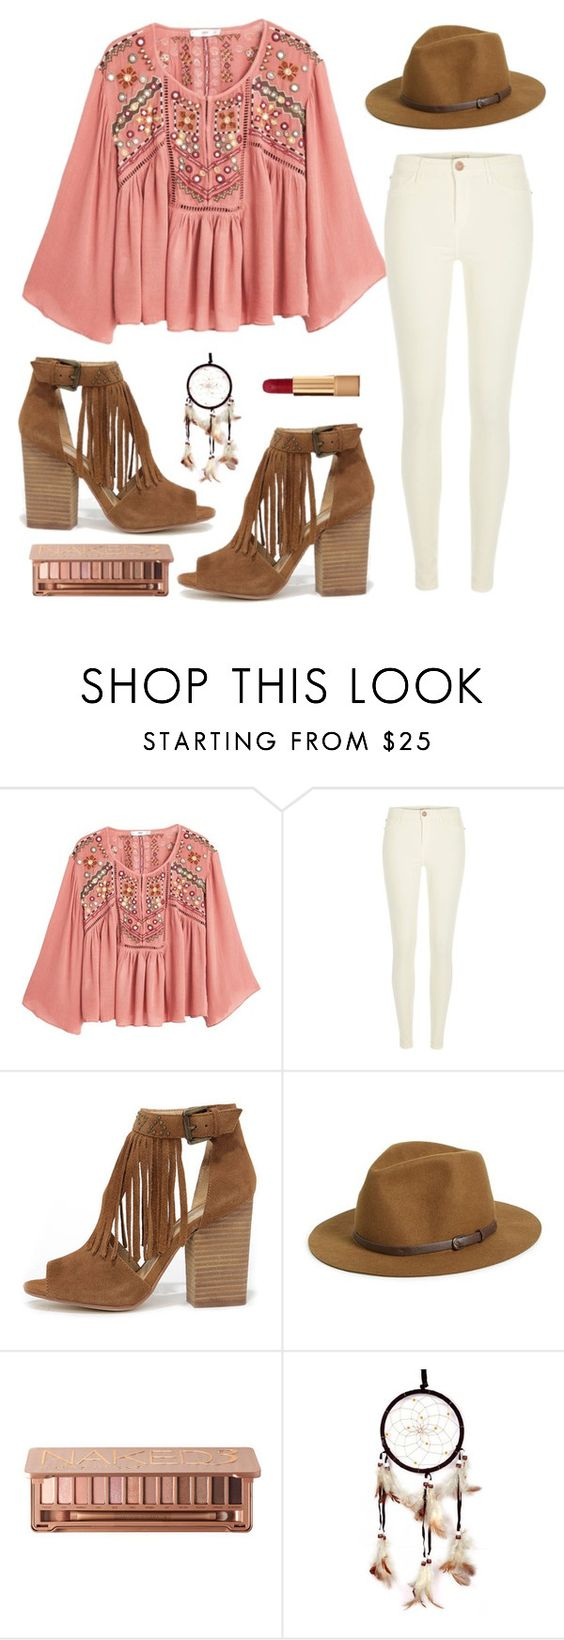 """Boho"" by kbeans2016 ❤ liked on Polyvore featuring MANGO, River Island, Chinese Laundry, Sole Society, Urban Decay, Chanel, women's clothing, women, female and woman"